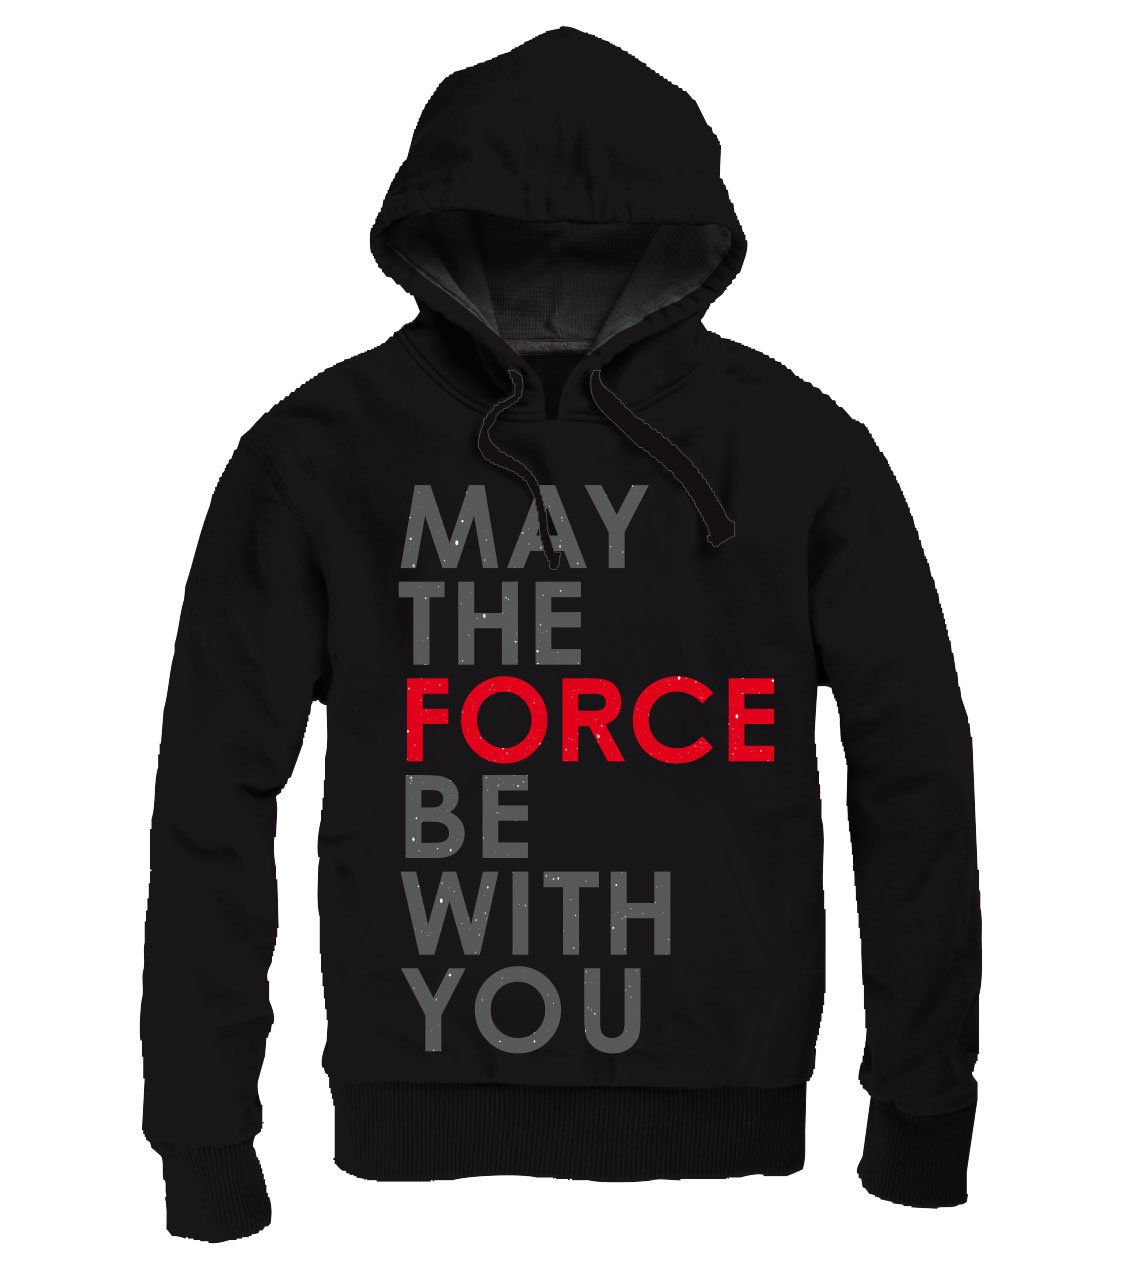 Star Wars Episode VIII Hooded Sweater May The Force Be With You Size S